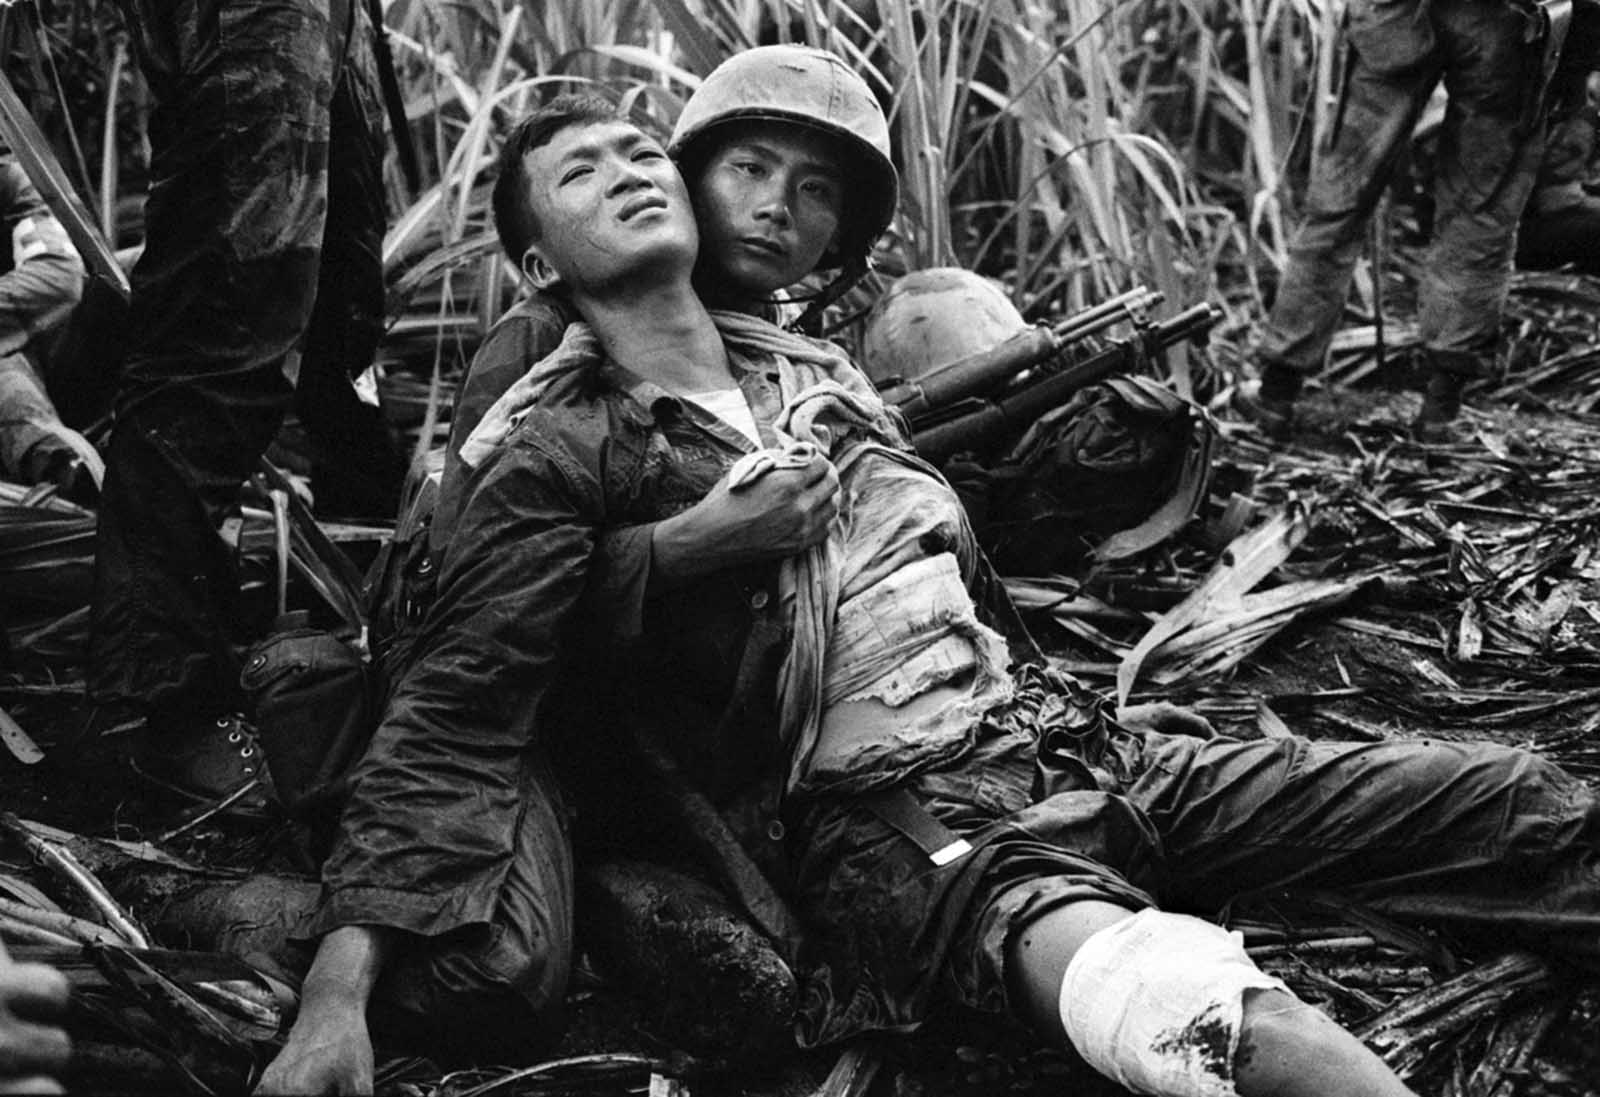 A South Vietnamese Marine, severely wounded in a Viet Cong ambush, is comforted by a comrade in a sugar-cane field at Duc Hoa, about 12 miles from Saigon, on August 5, 1963. A platoon of 30 Vietnamese Marines was searching for communist guerrillas when a long burst of automatic fire killed one Marine and wounded four others.